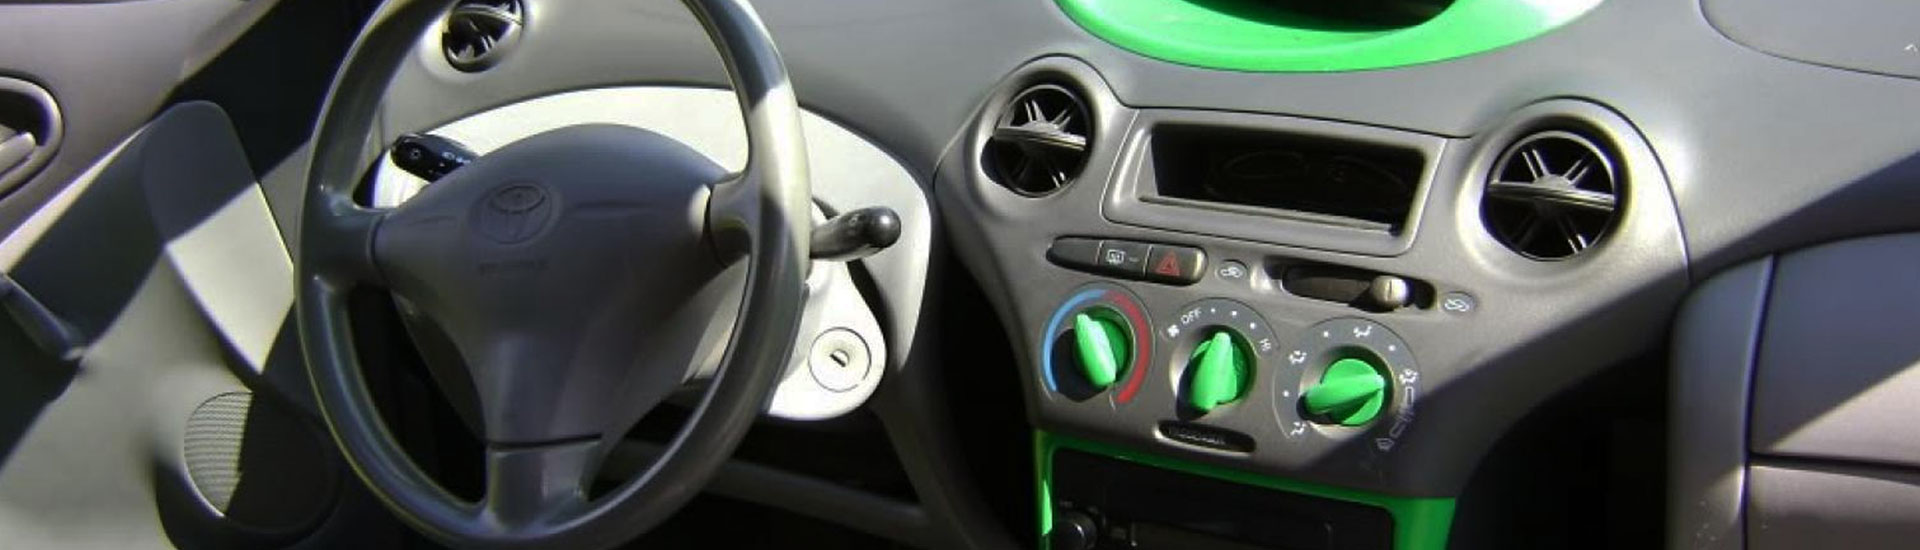 Toyota Echo Dash Trim Kits